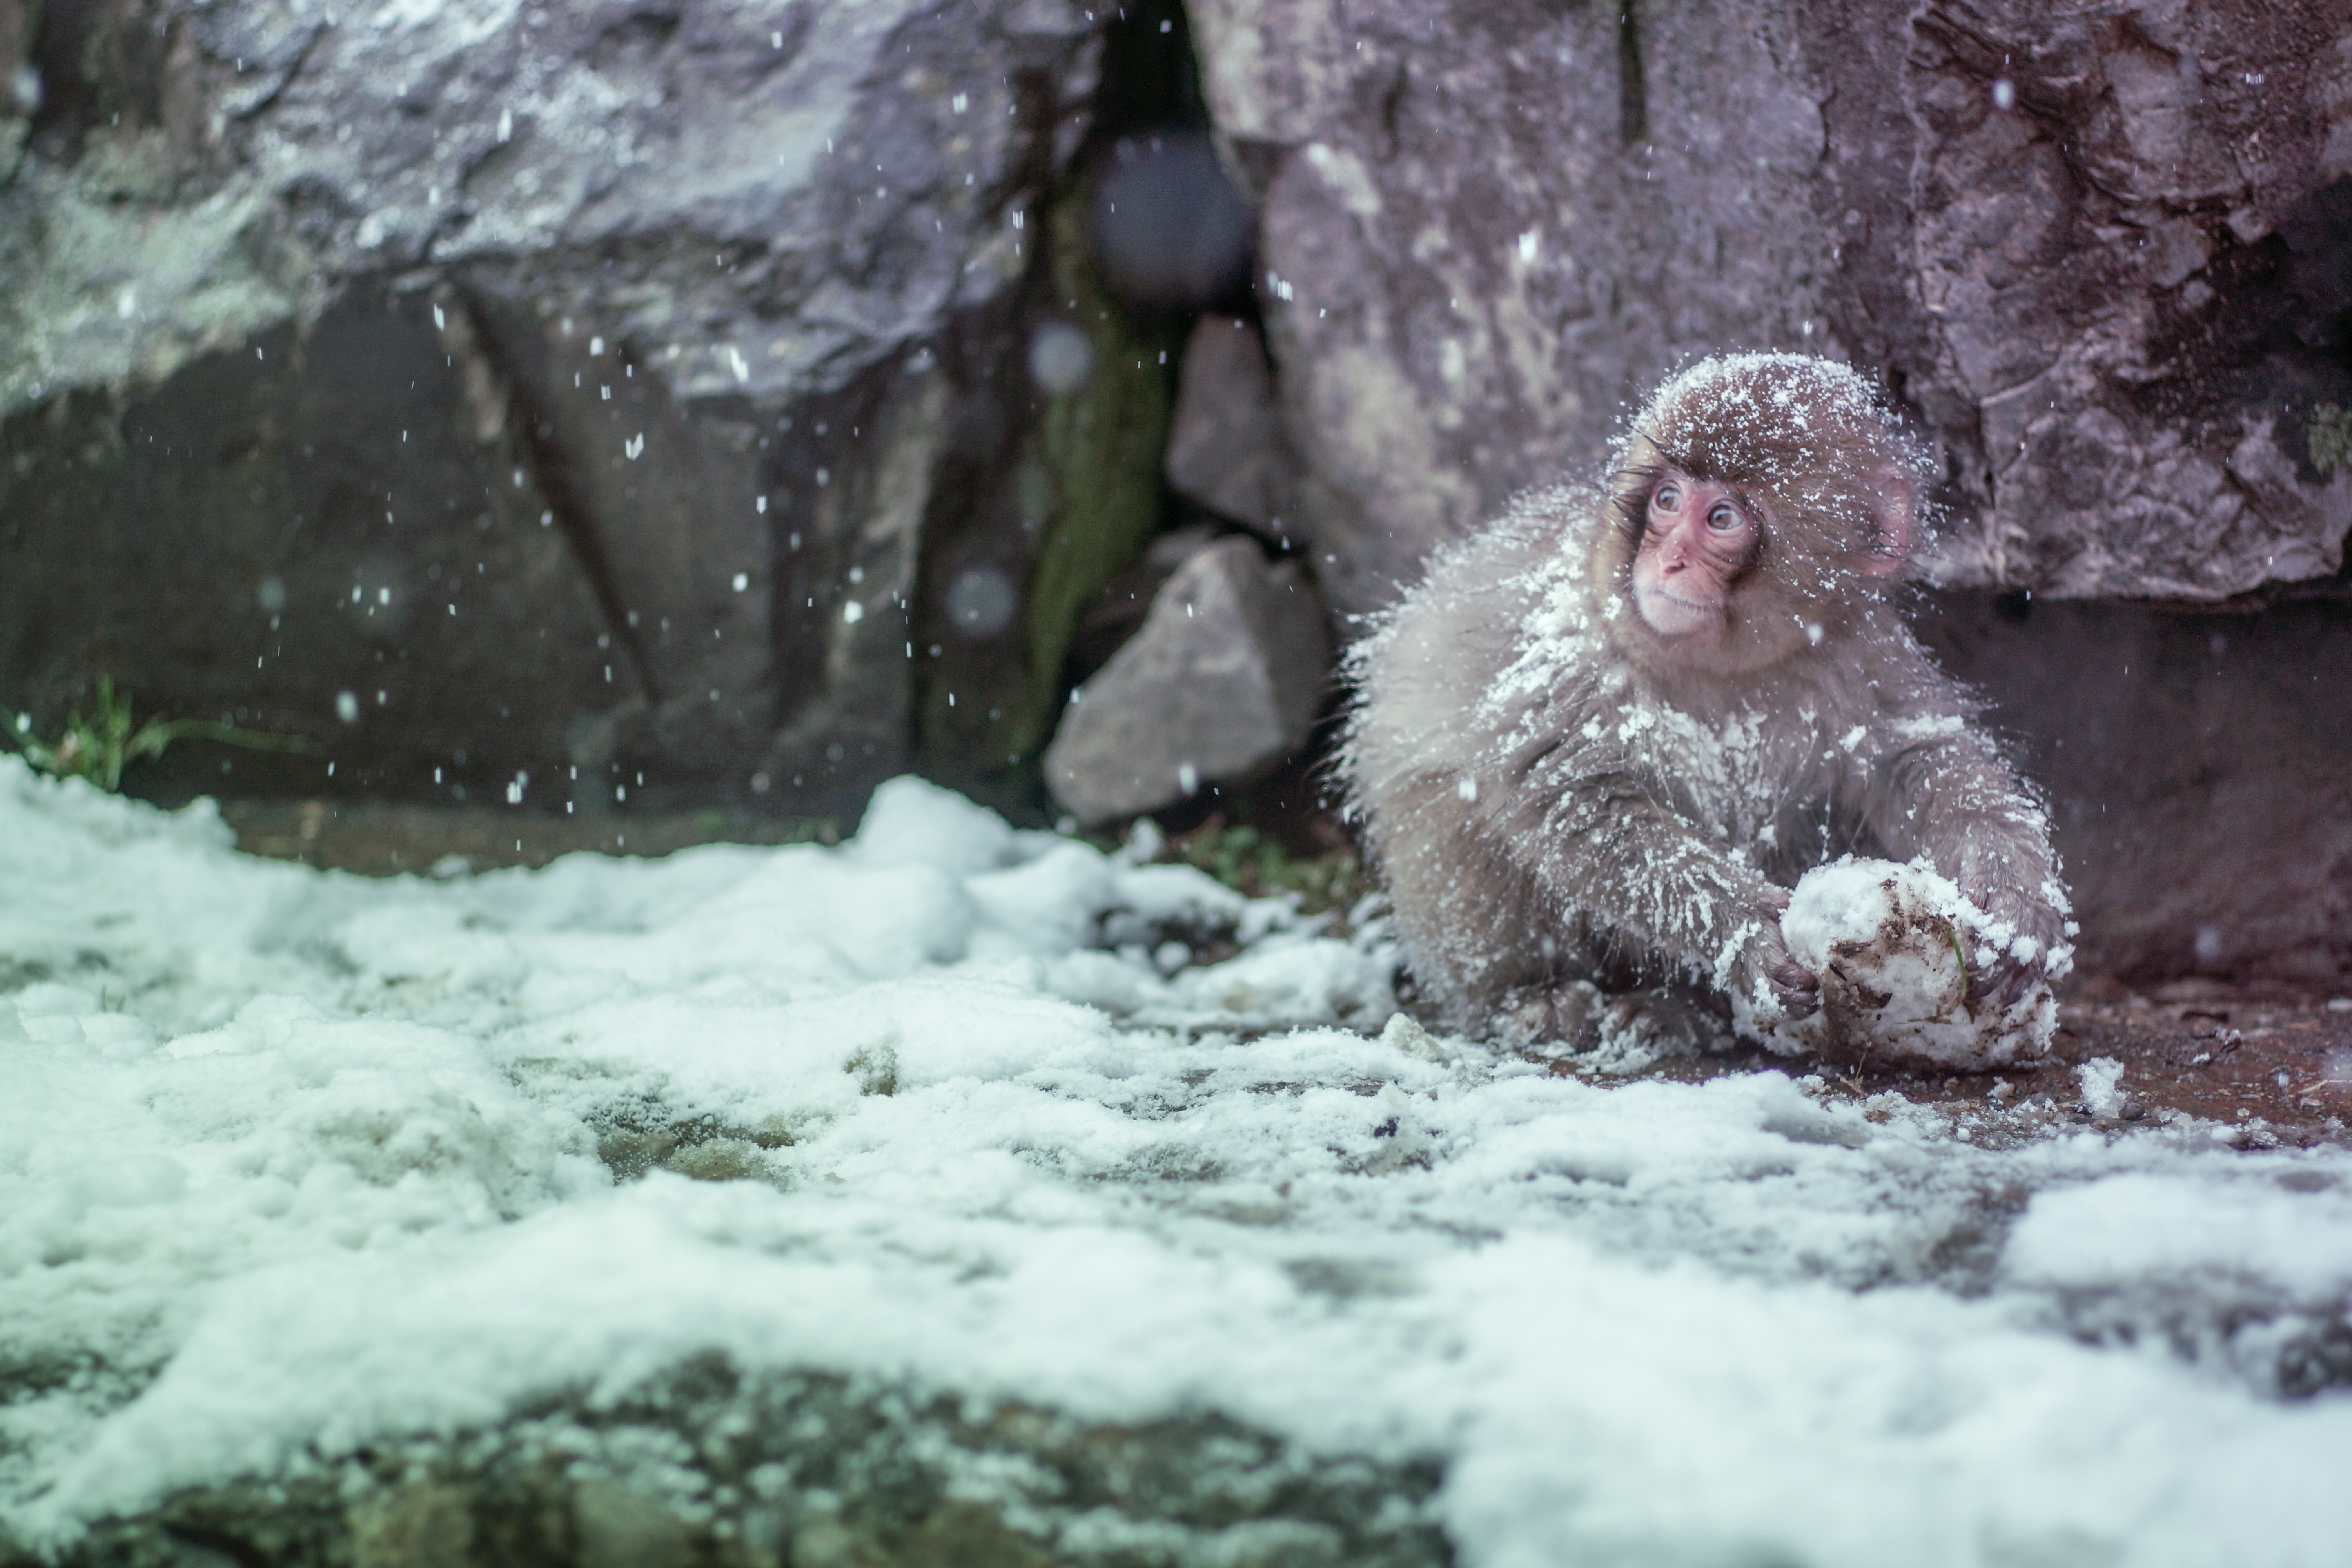 A monkey playing with a stone in the snow around a rock mountain in Nagano